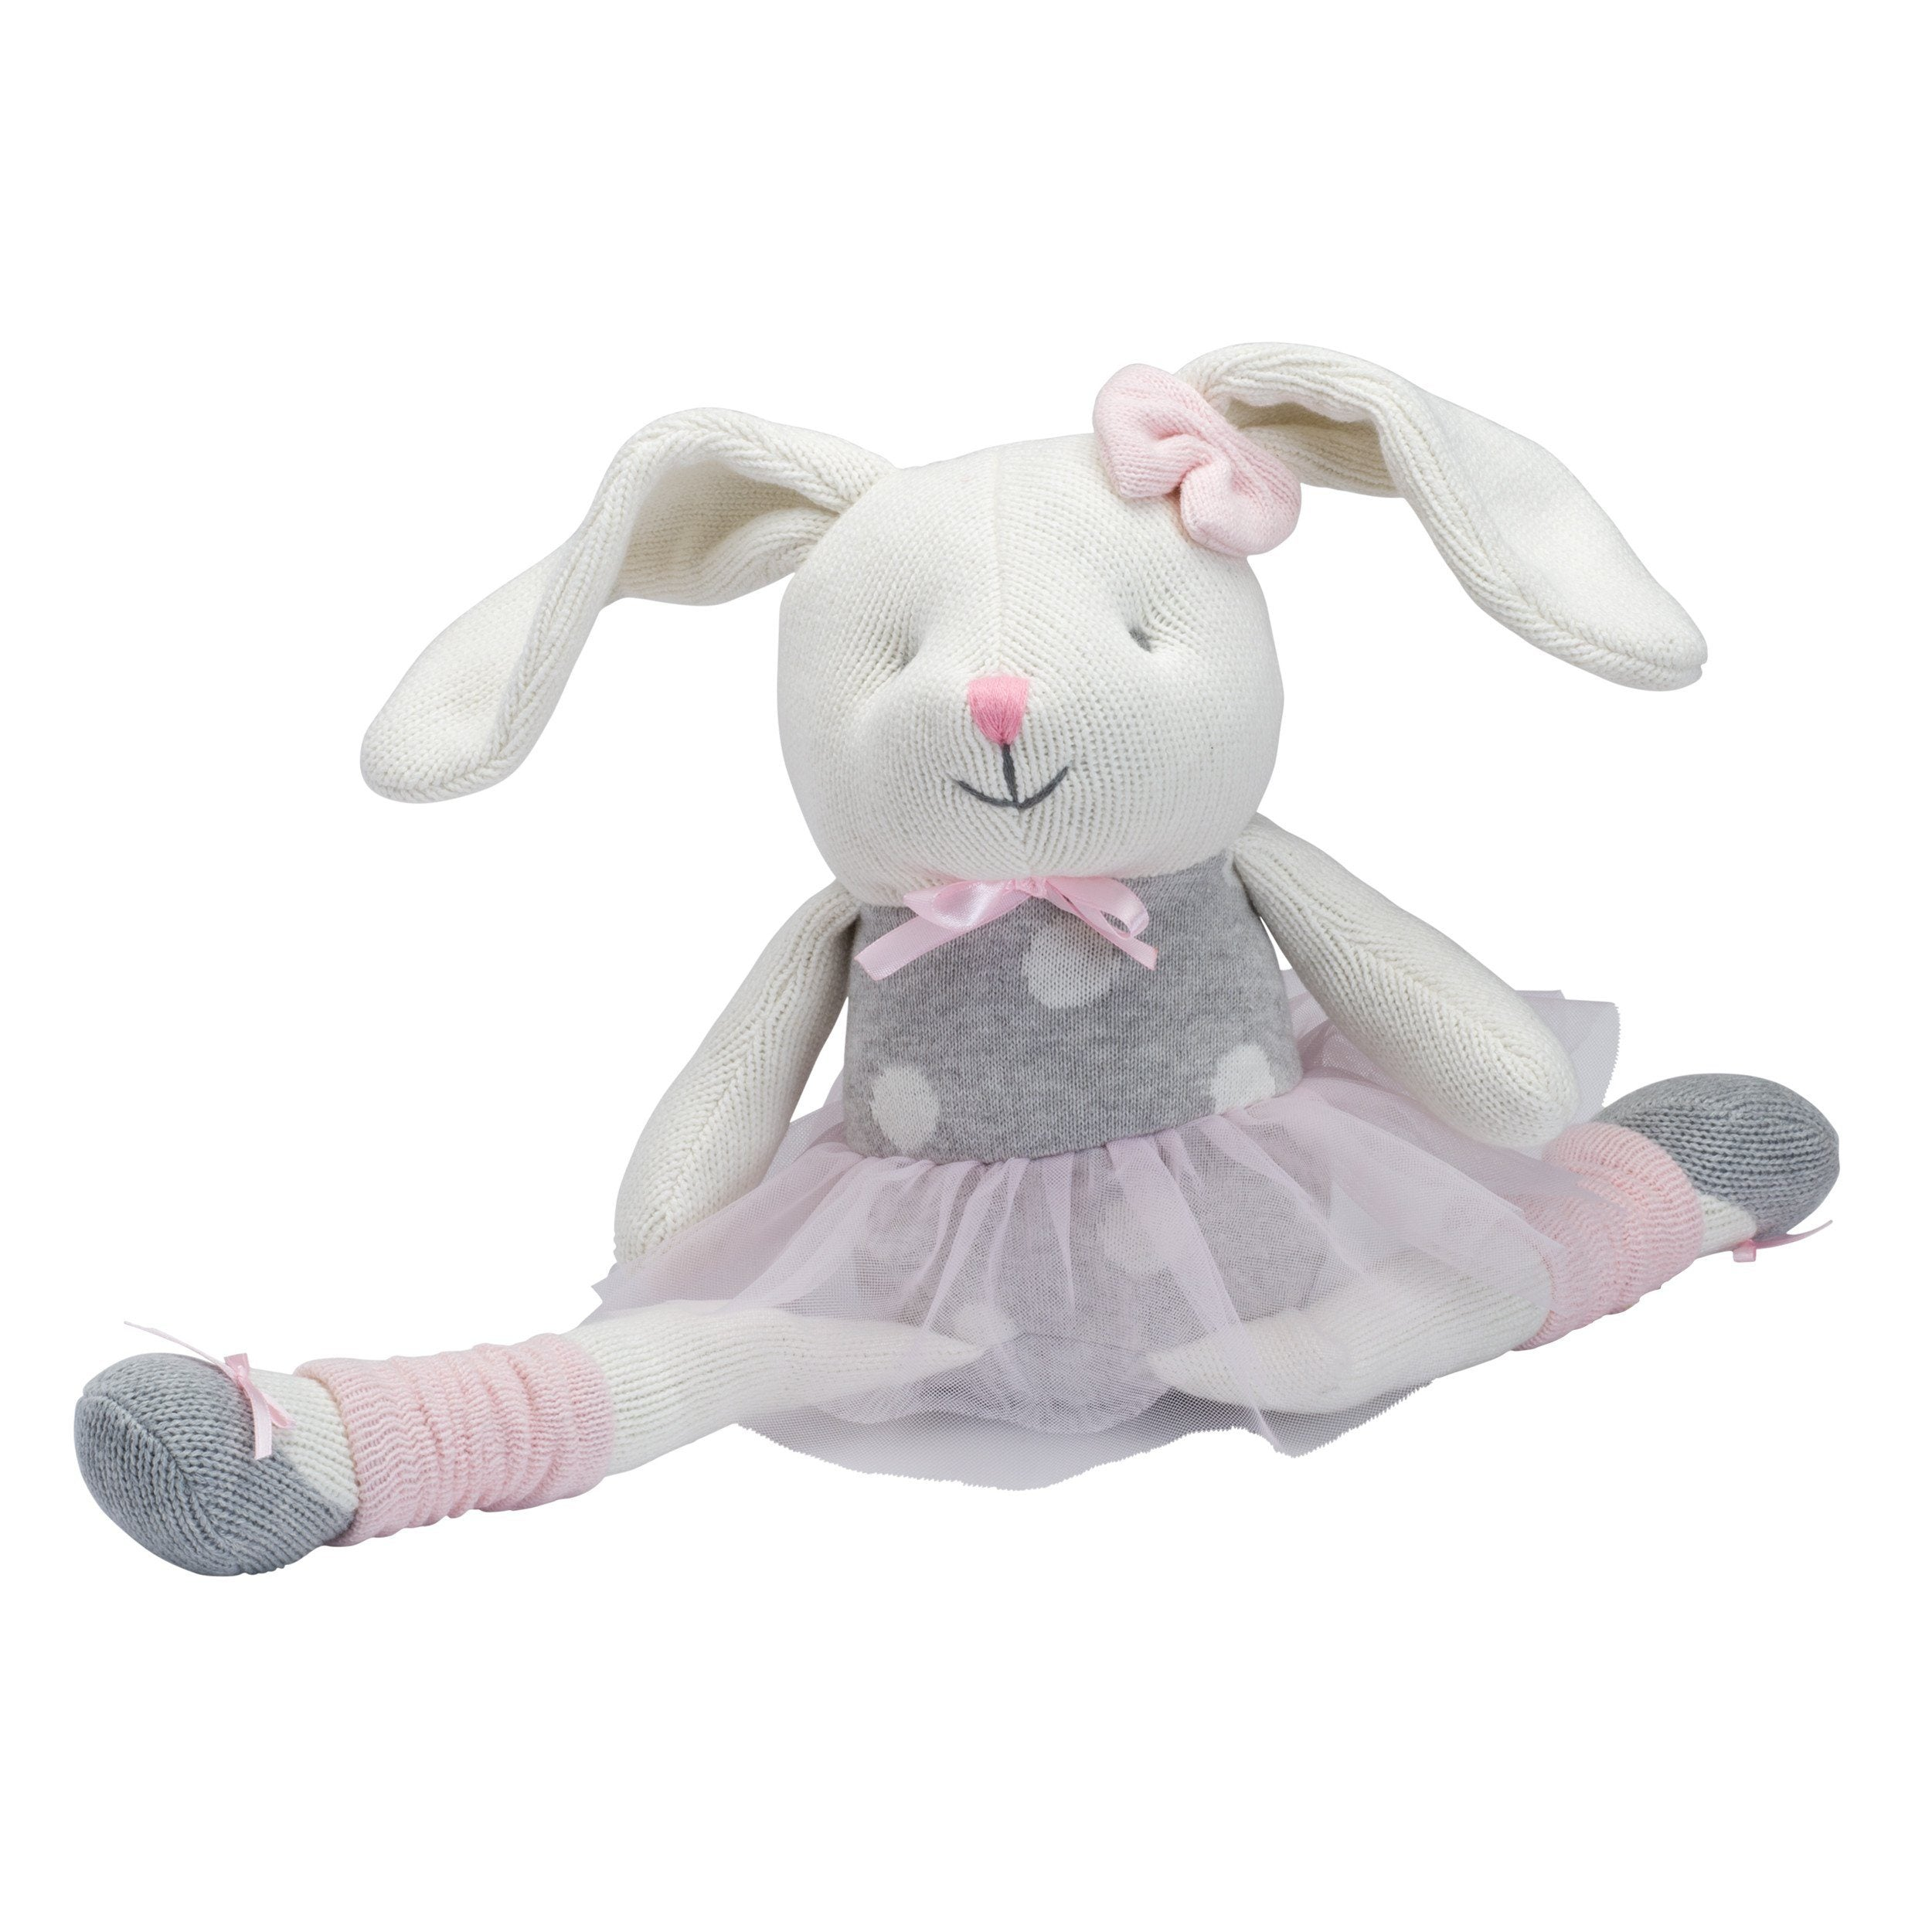 Ballet Bunny Knittie Bittie Toy - Project Nursery